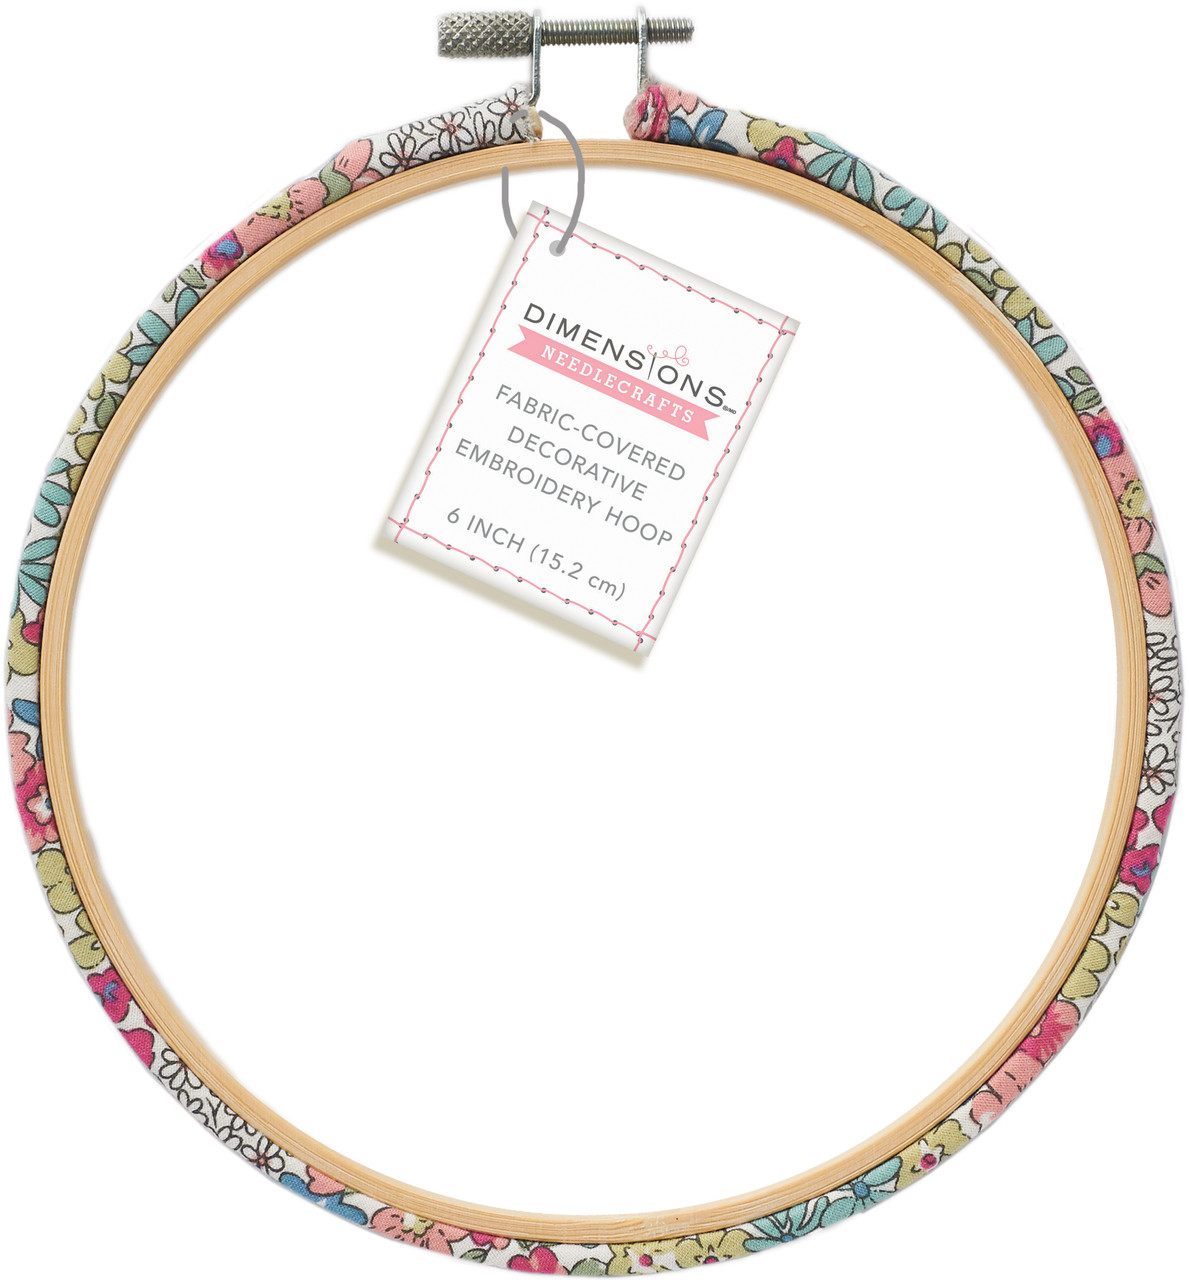 Dimensions - 6 inch Fabric Covered Bamboo Embroidery Hoop